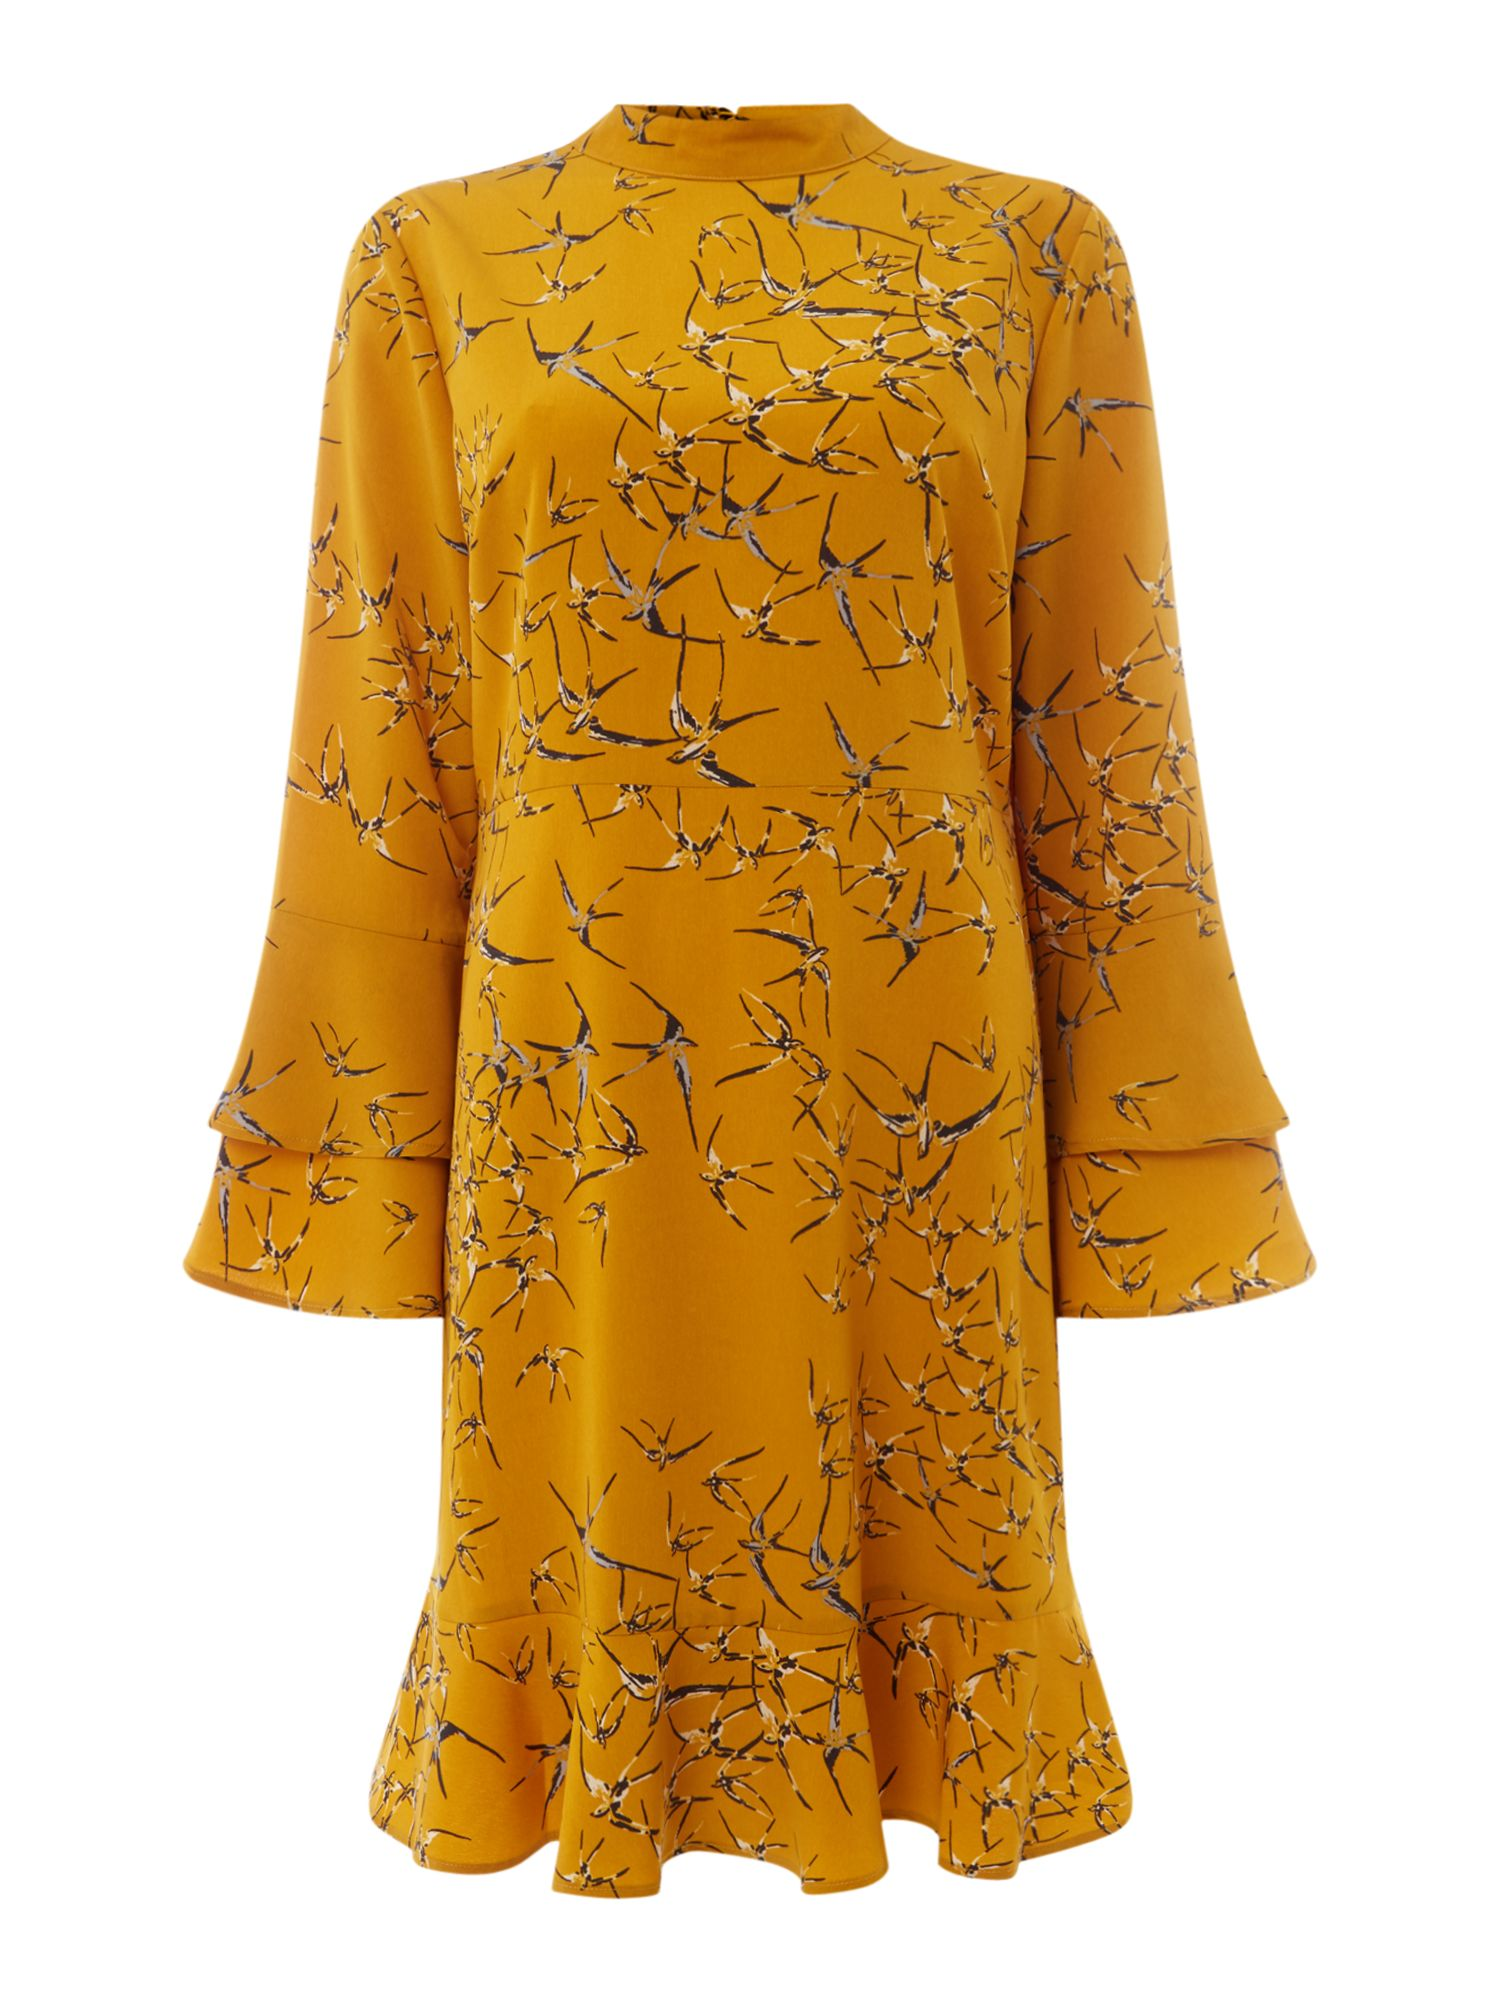 Maison De Nimes Swallow Print Dress, Mustard Yellow